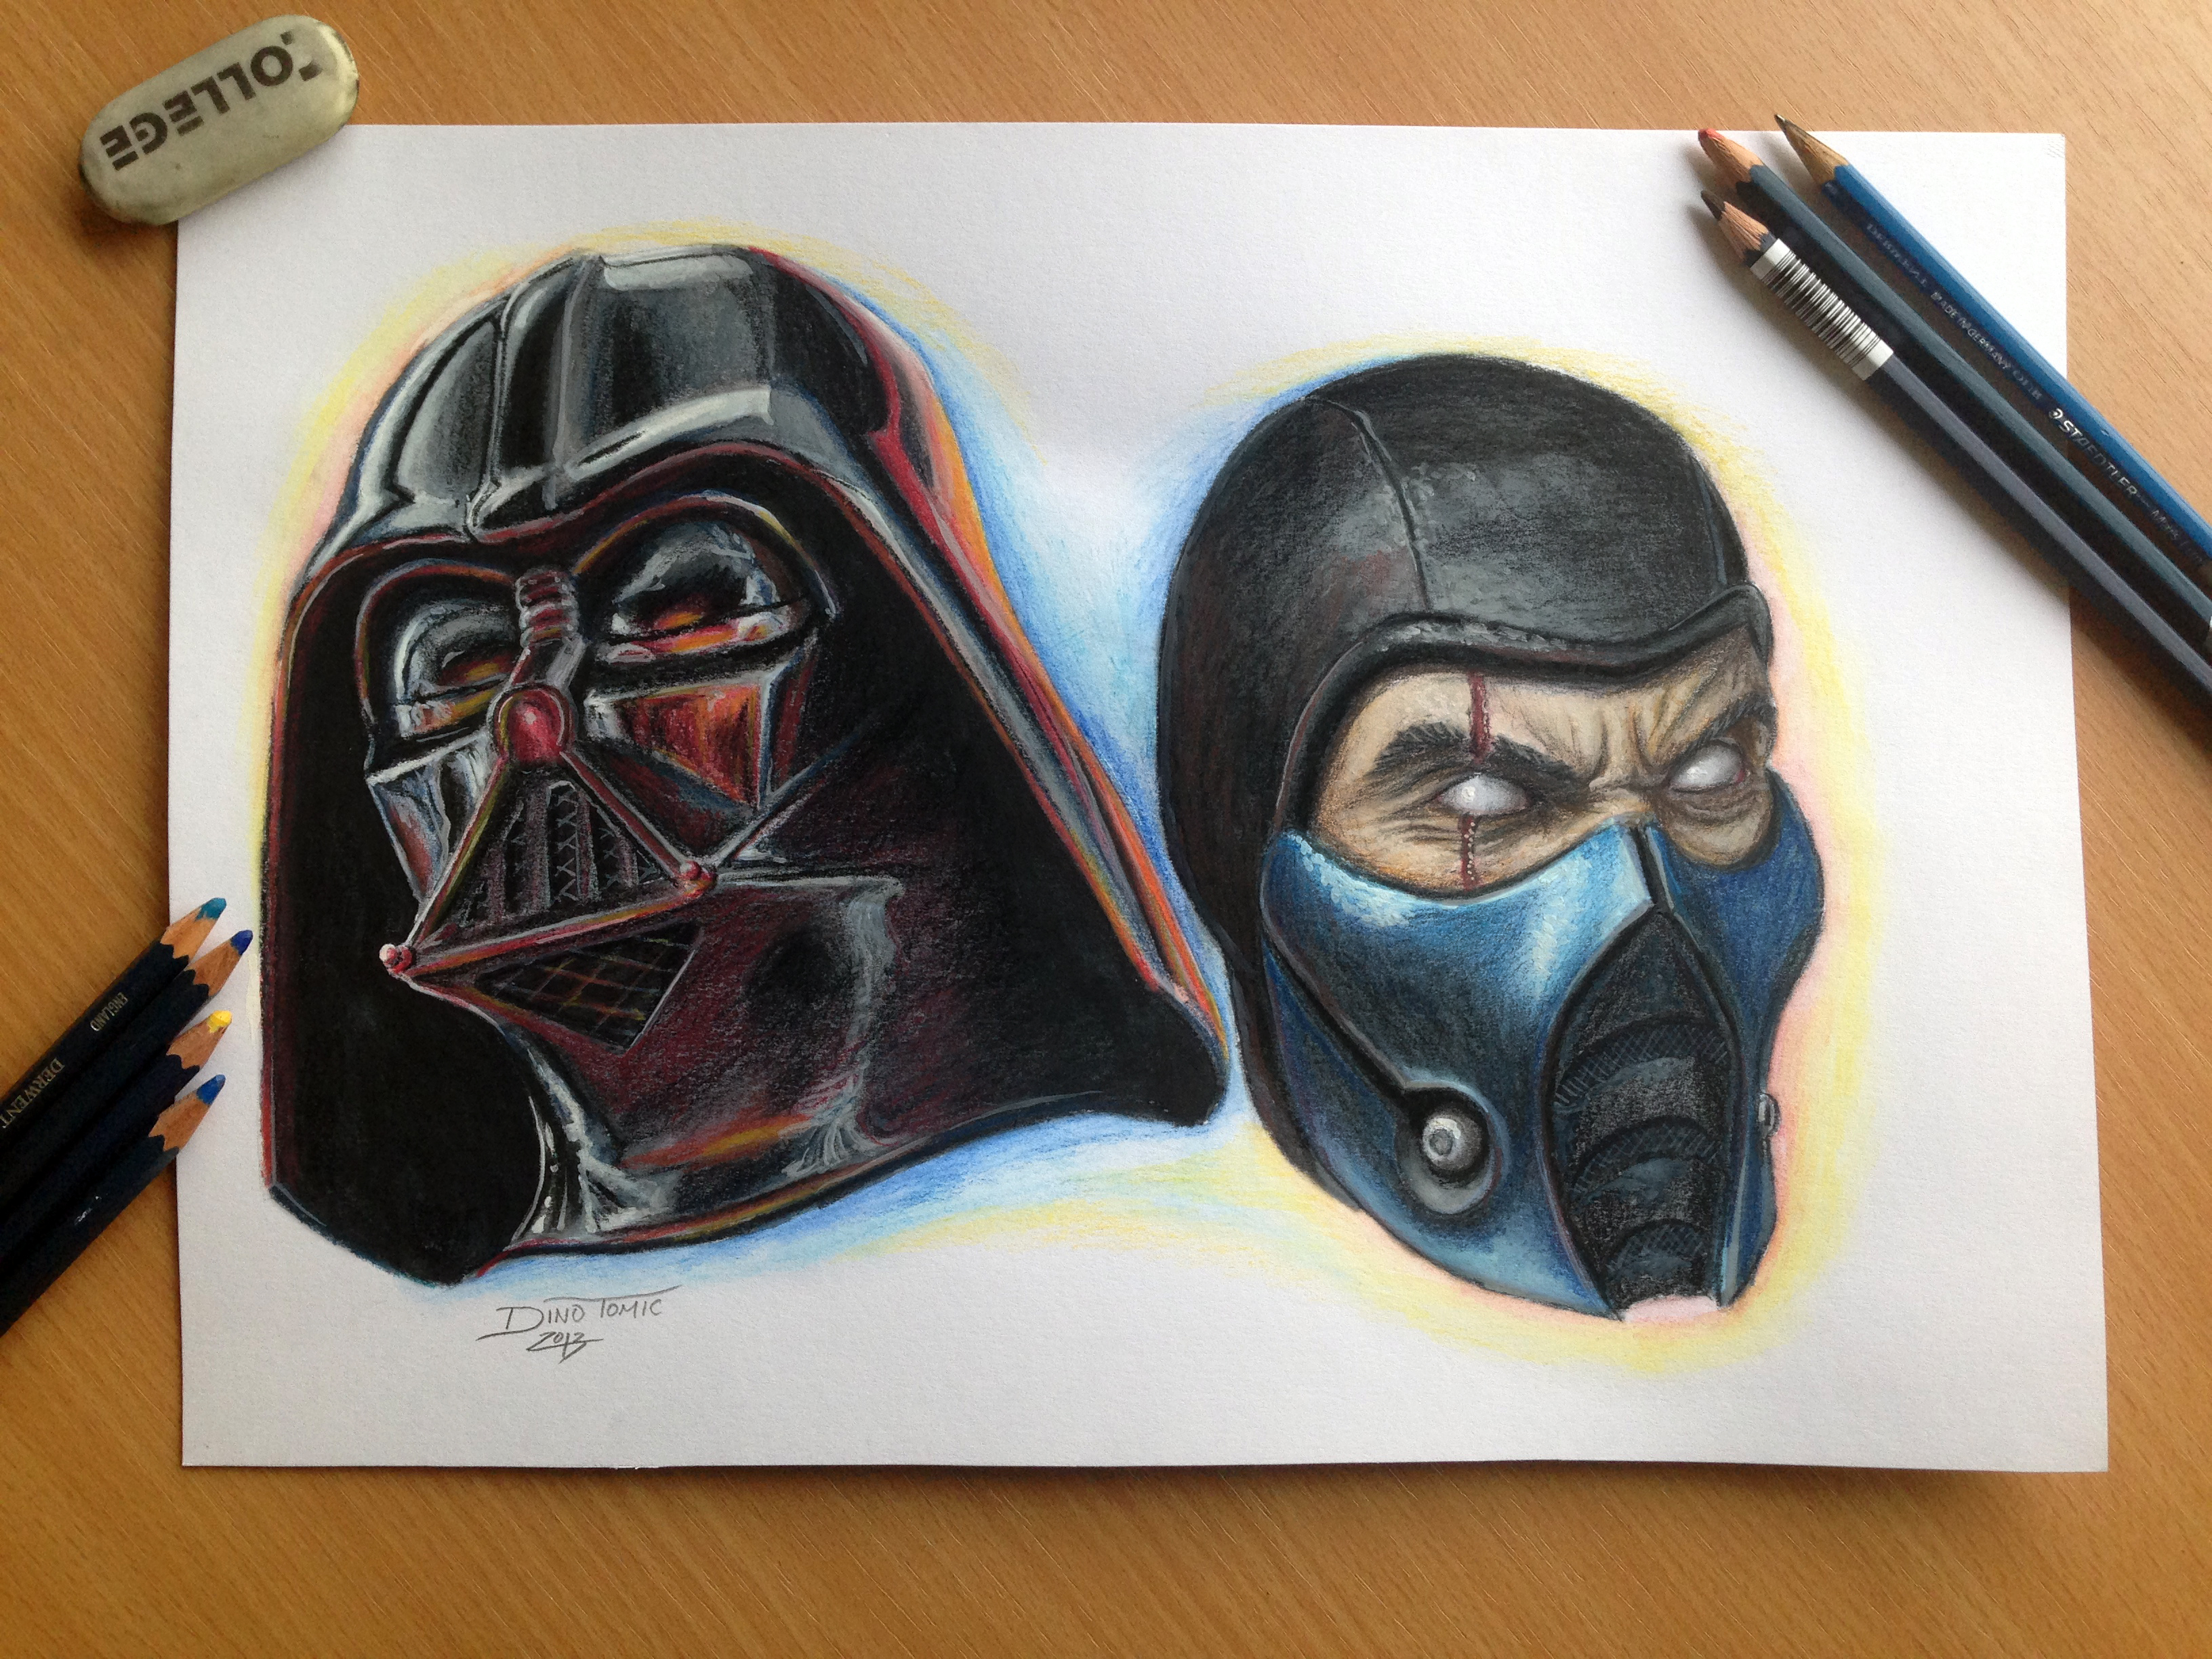 3264x2448 Color Pencil Drawing Of Darth Vader